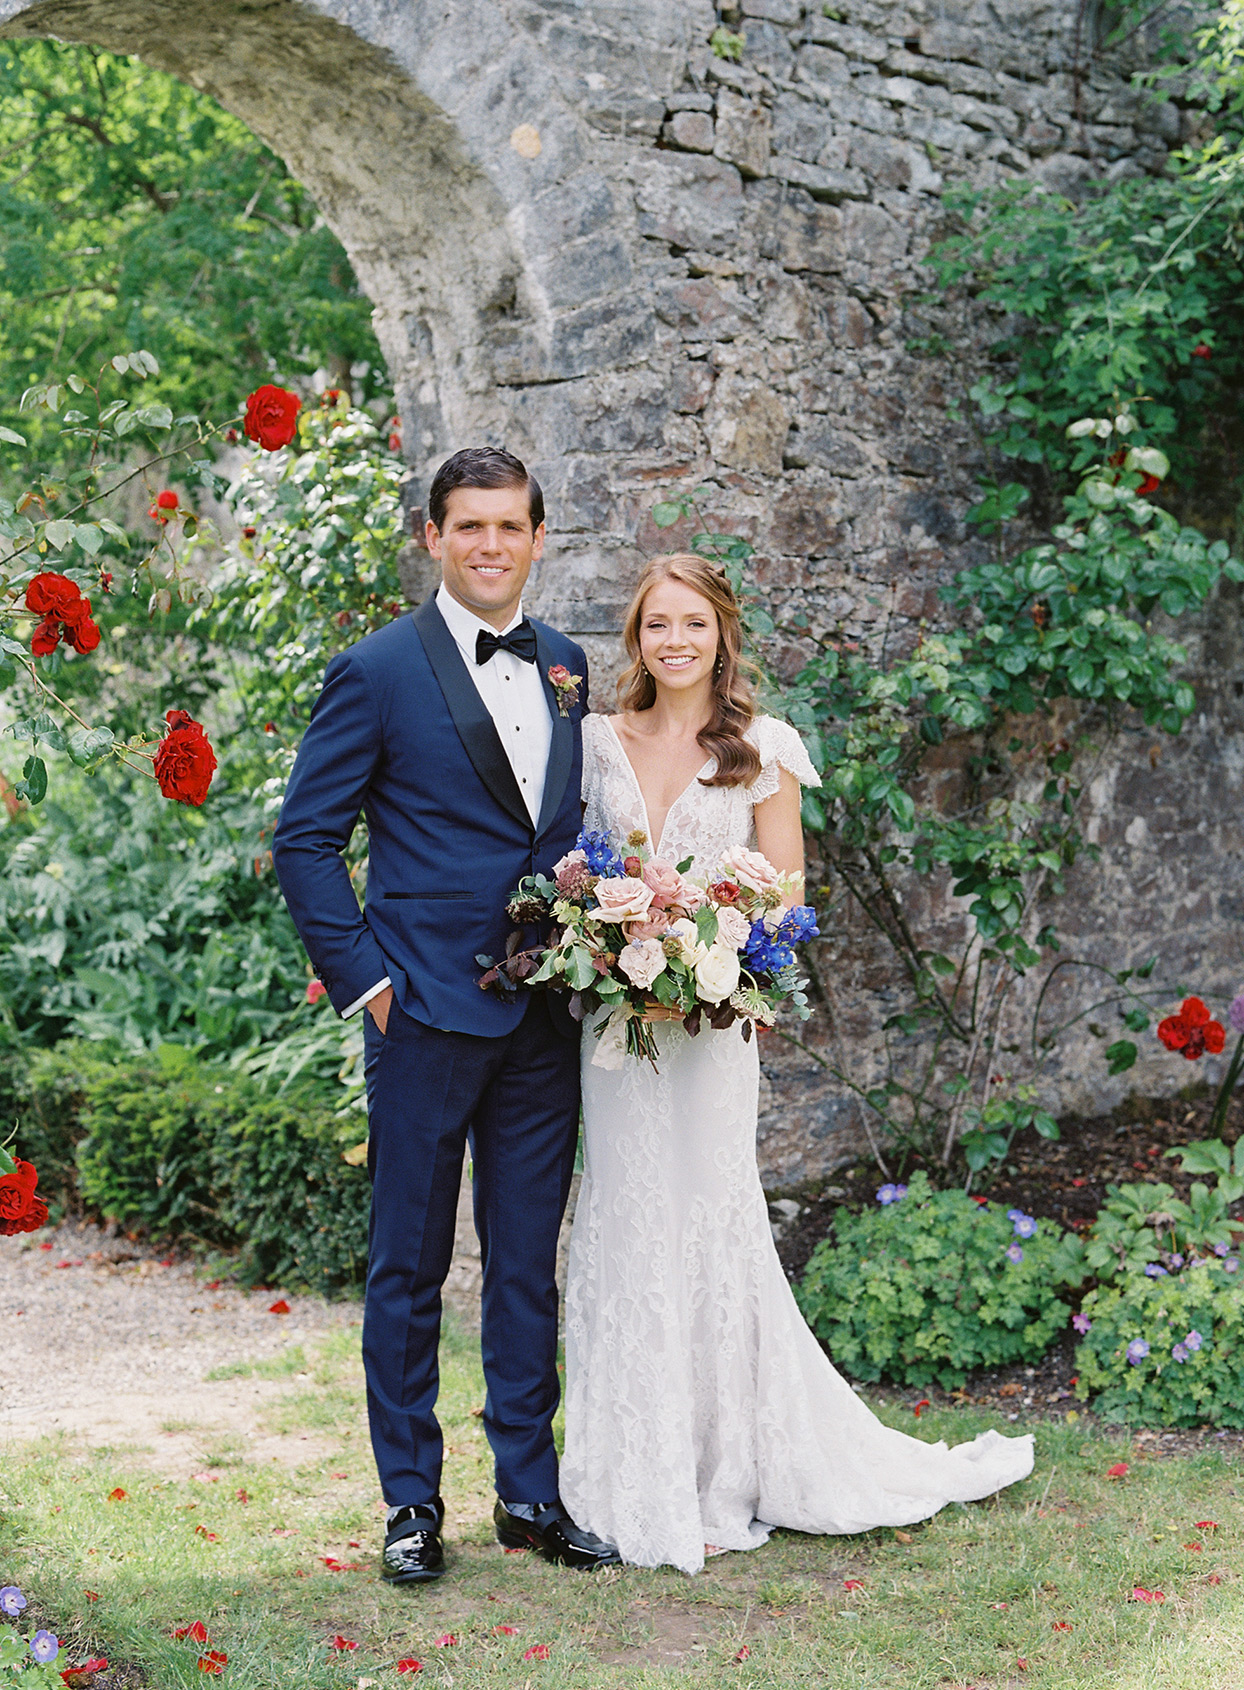 bride and groom next to stone archway outside in garden